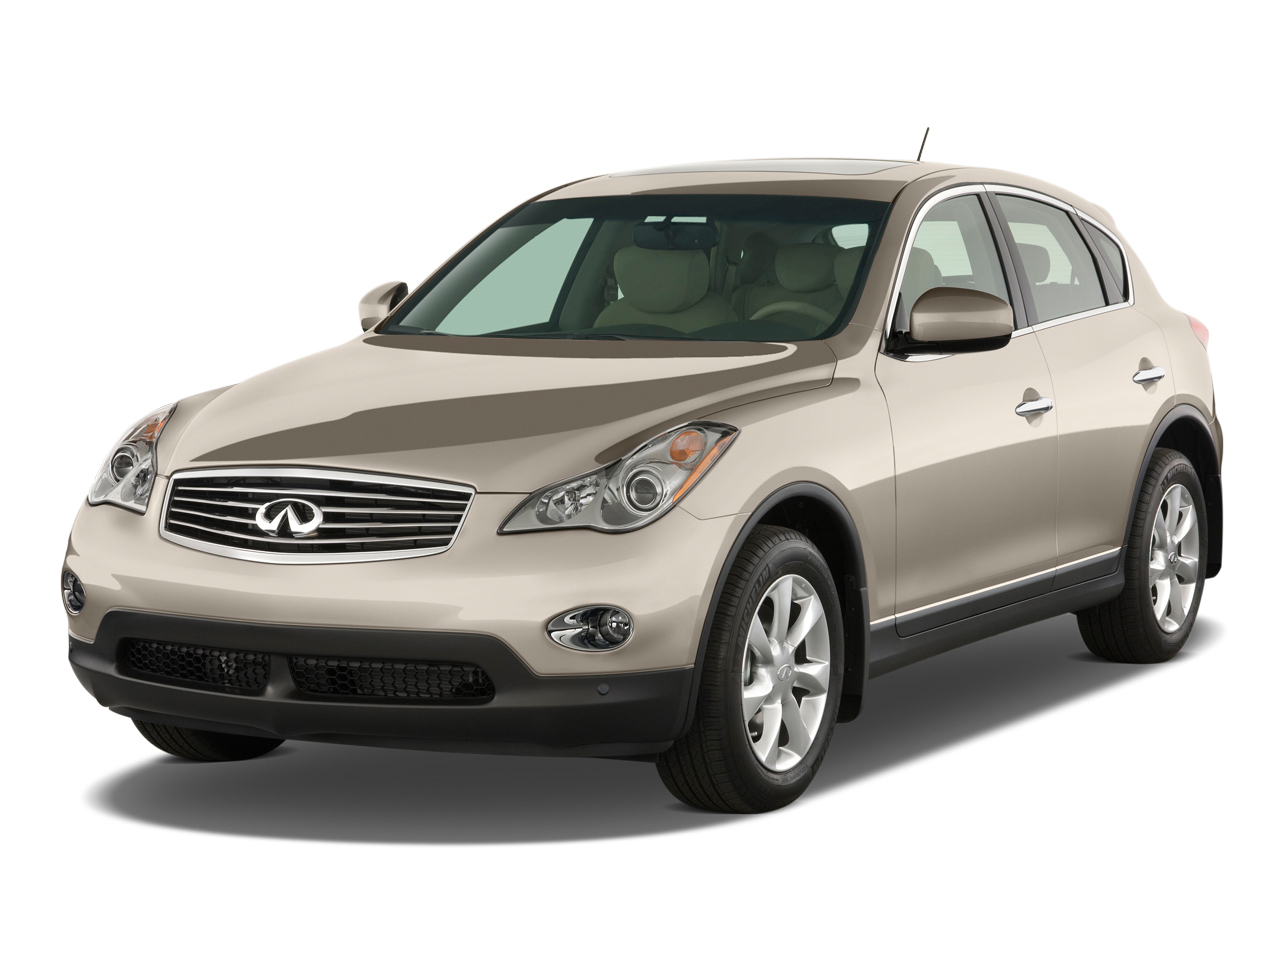 2011 infiniti ex35 review ratings specs prices and. Black Bedroom Furniture Sets. Home Design Ideas